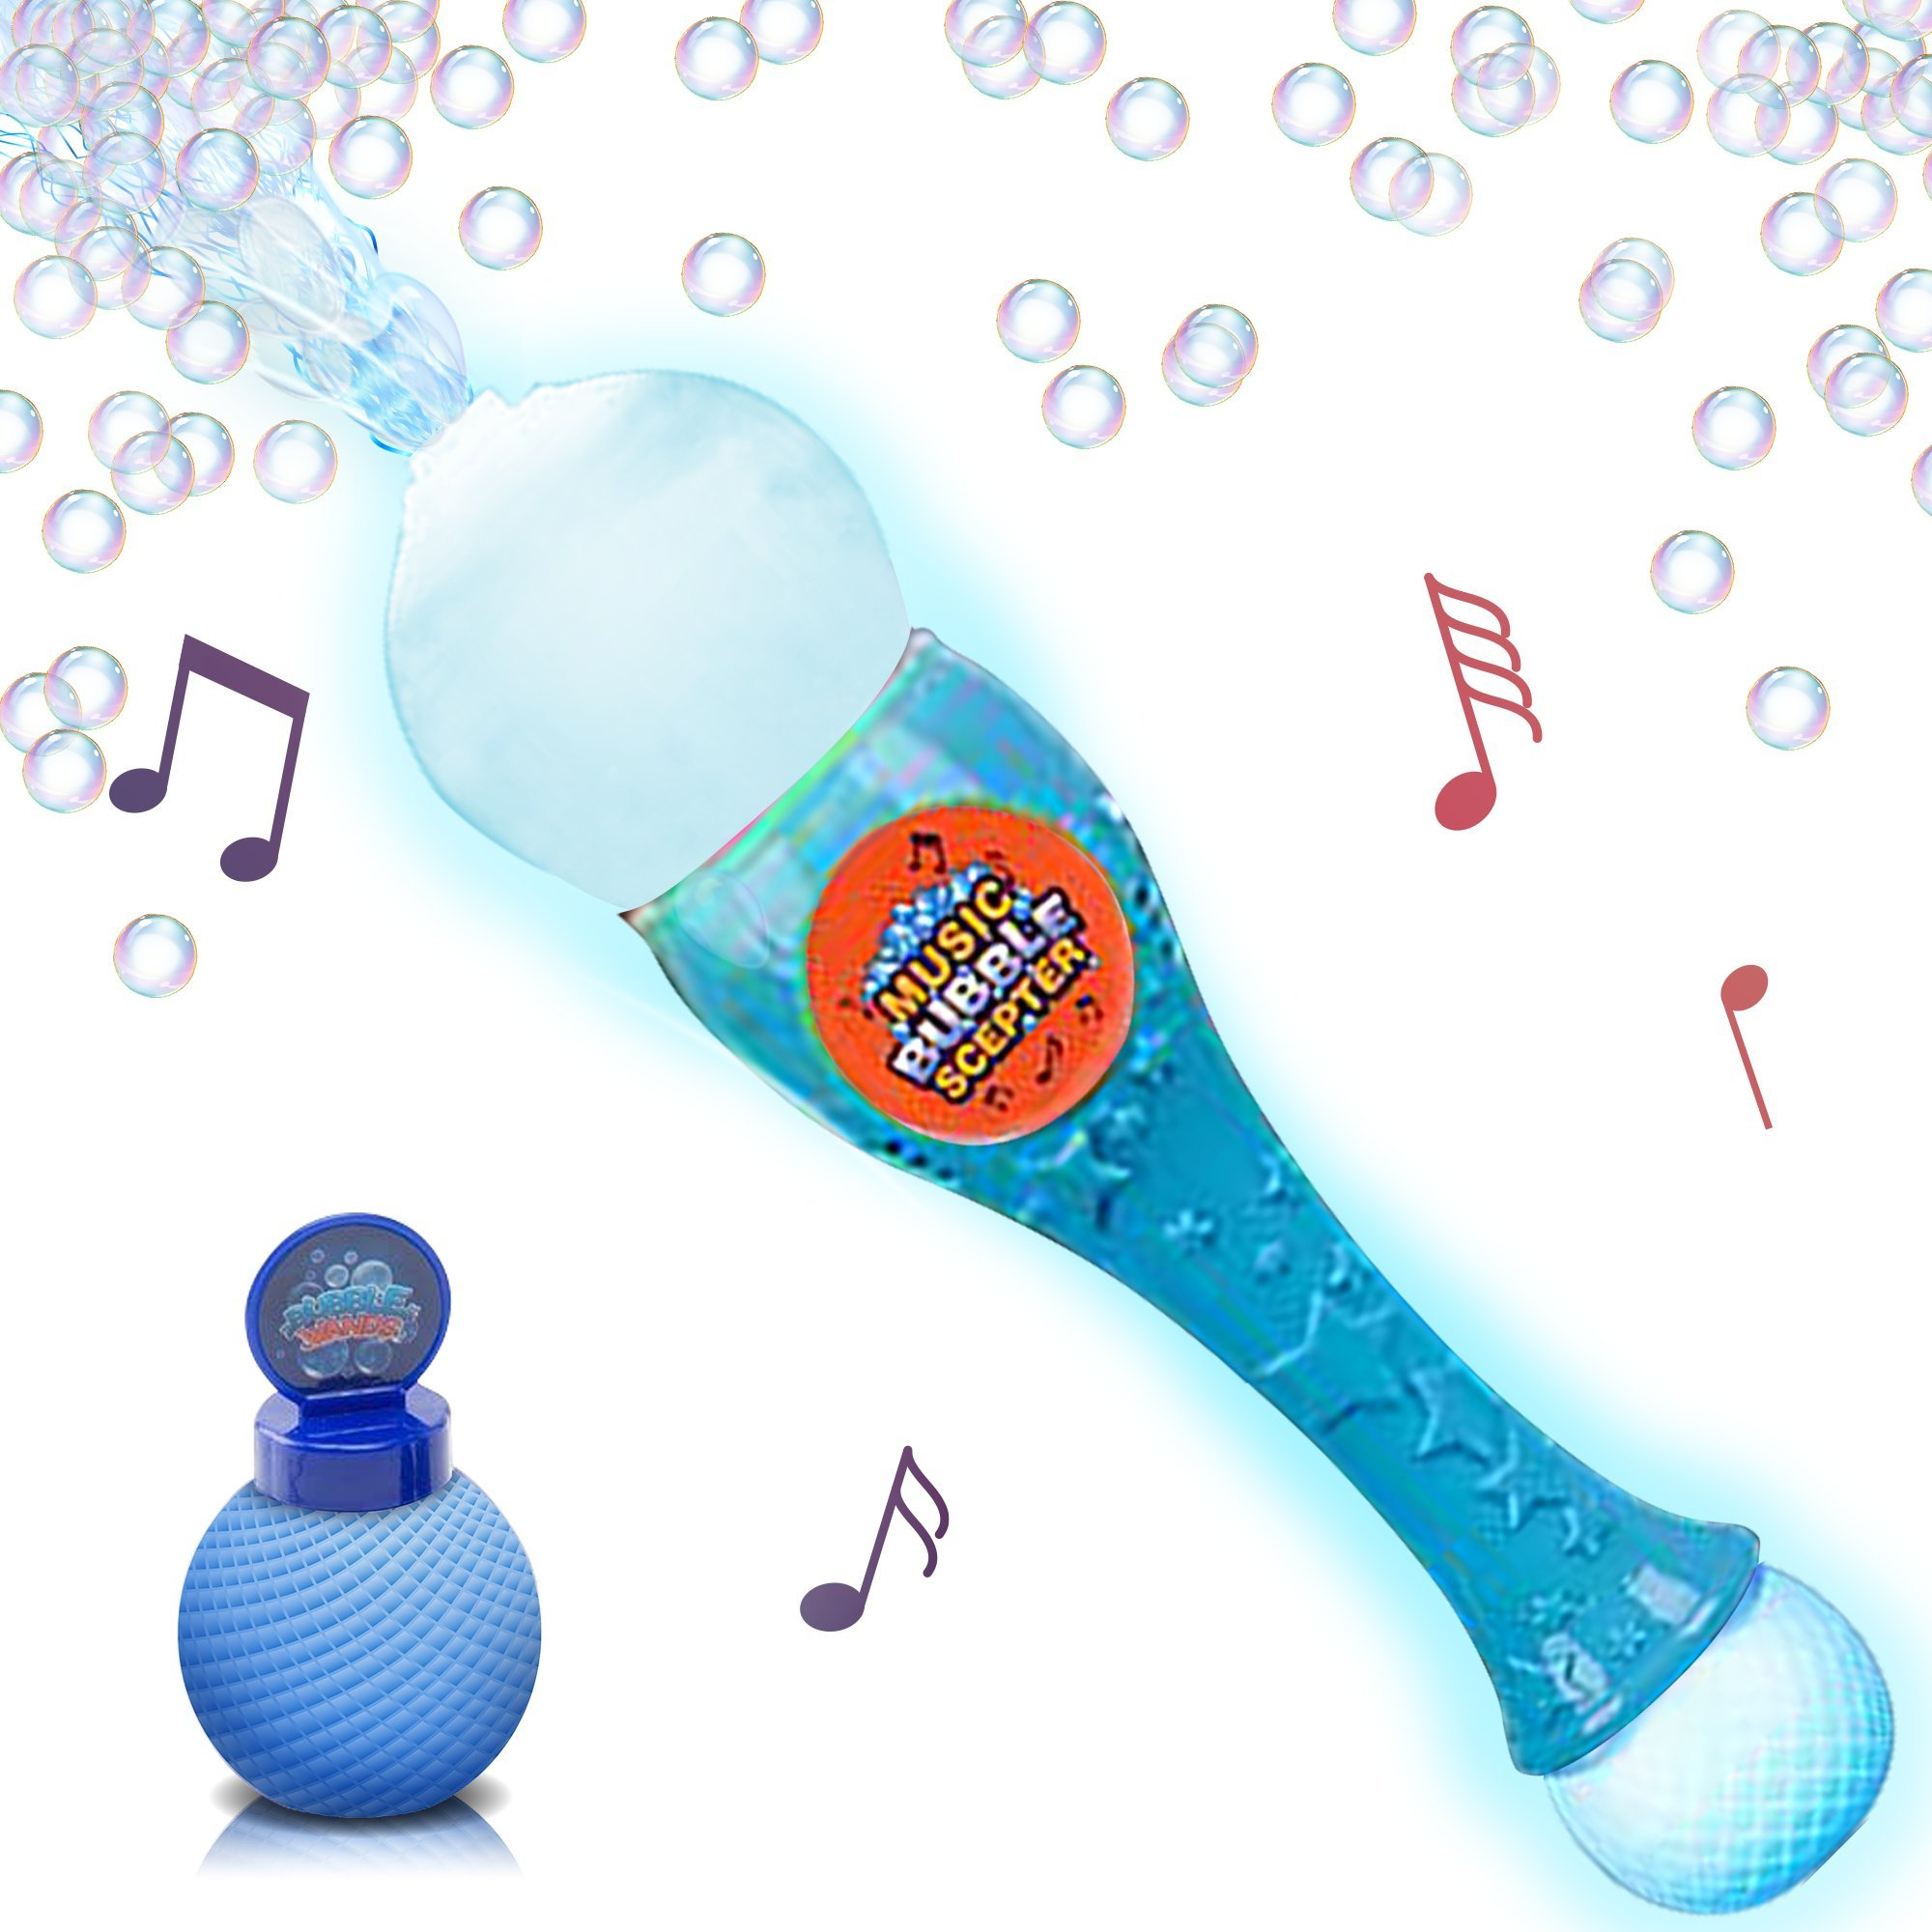 Light Up Musical Bubble Blower Wand by ArtCreativity 13.5 Illuminating Bubble Blower Wand w/ Thrilling LED and Music Sound Effect for Kids, Bubble Fluid - Batteries Included | Gift Idea/Party Favors by ArtCreativity (Image #1)